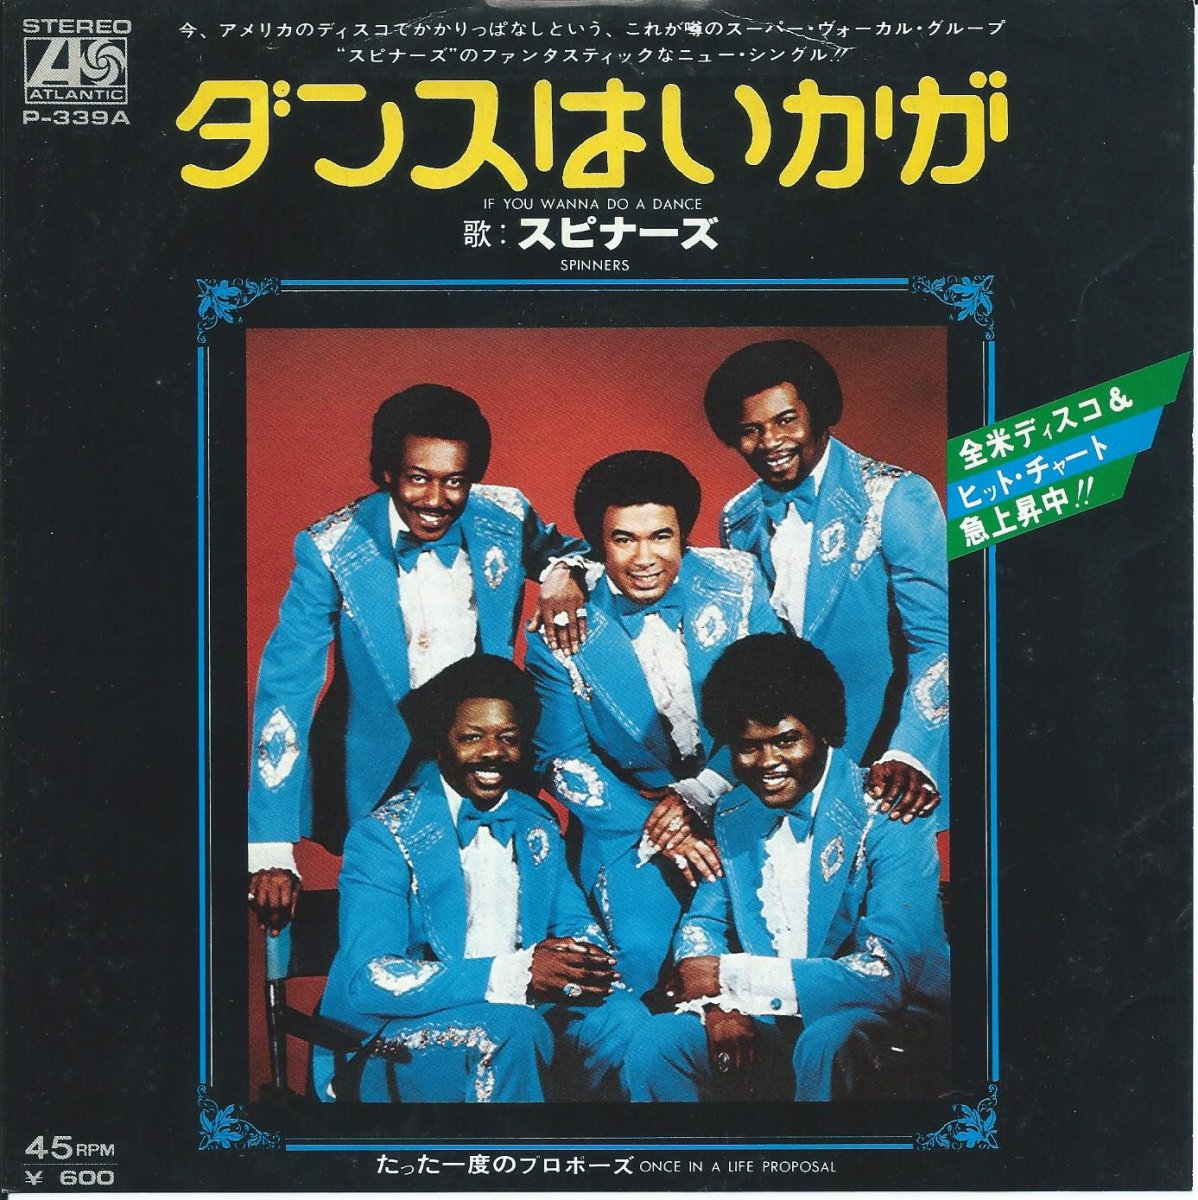 スピナーズ THE SPINNERS / ダンスはいかが IF YOU WANNA DO A DANCE (7